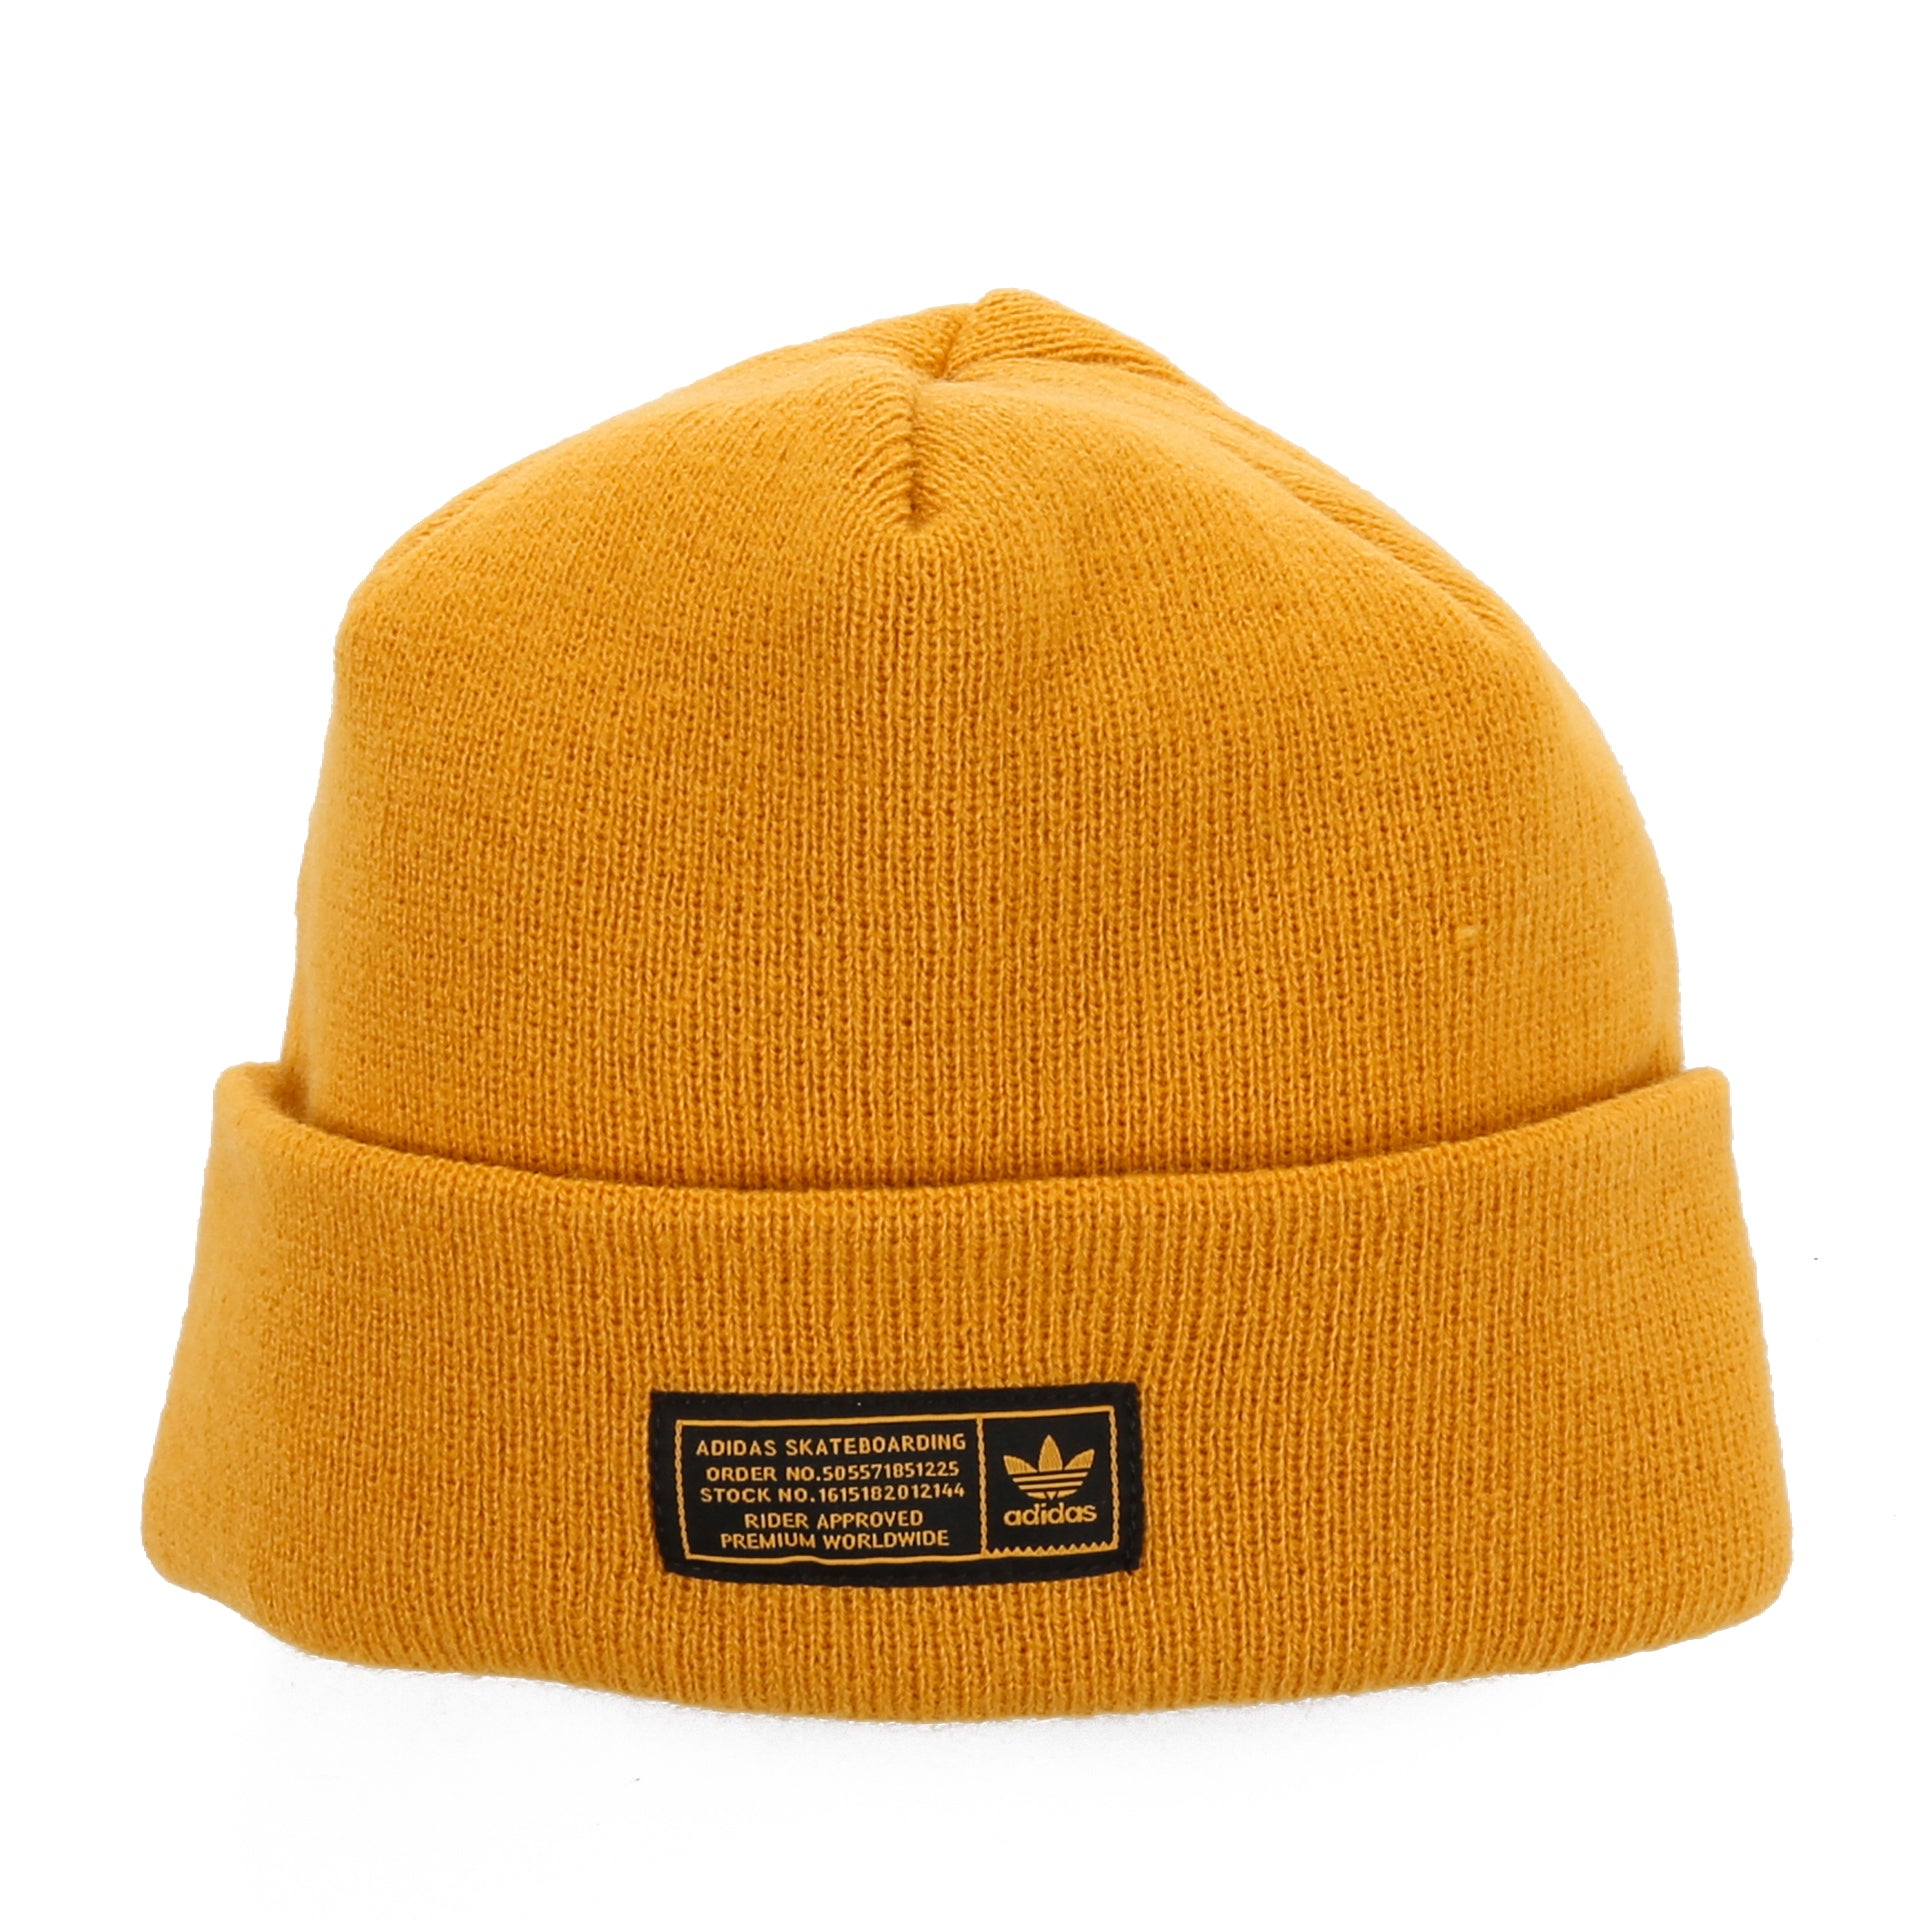 47d79845e Adidas Skateboarding The Joe Beanie - Tactile Yellow